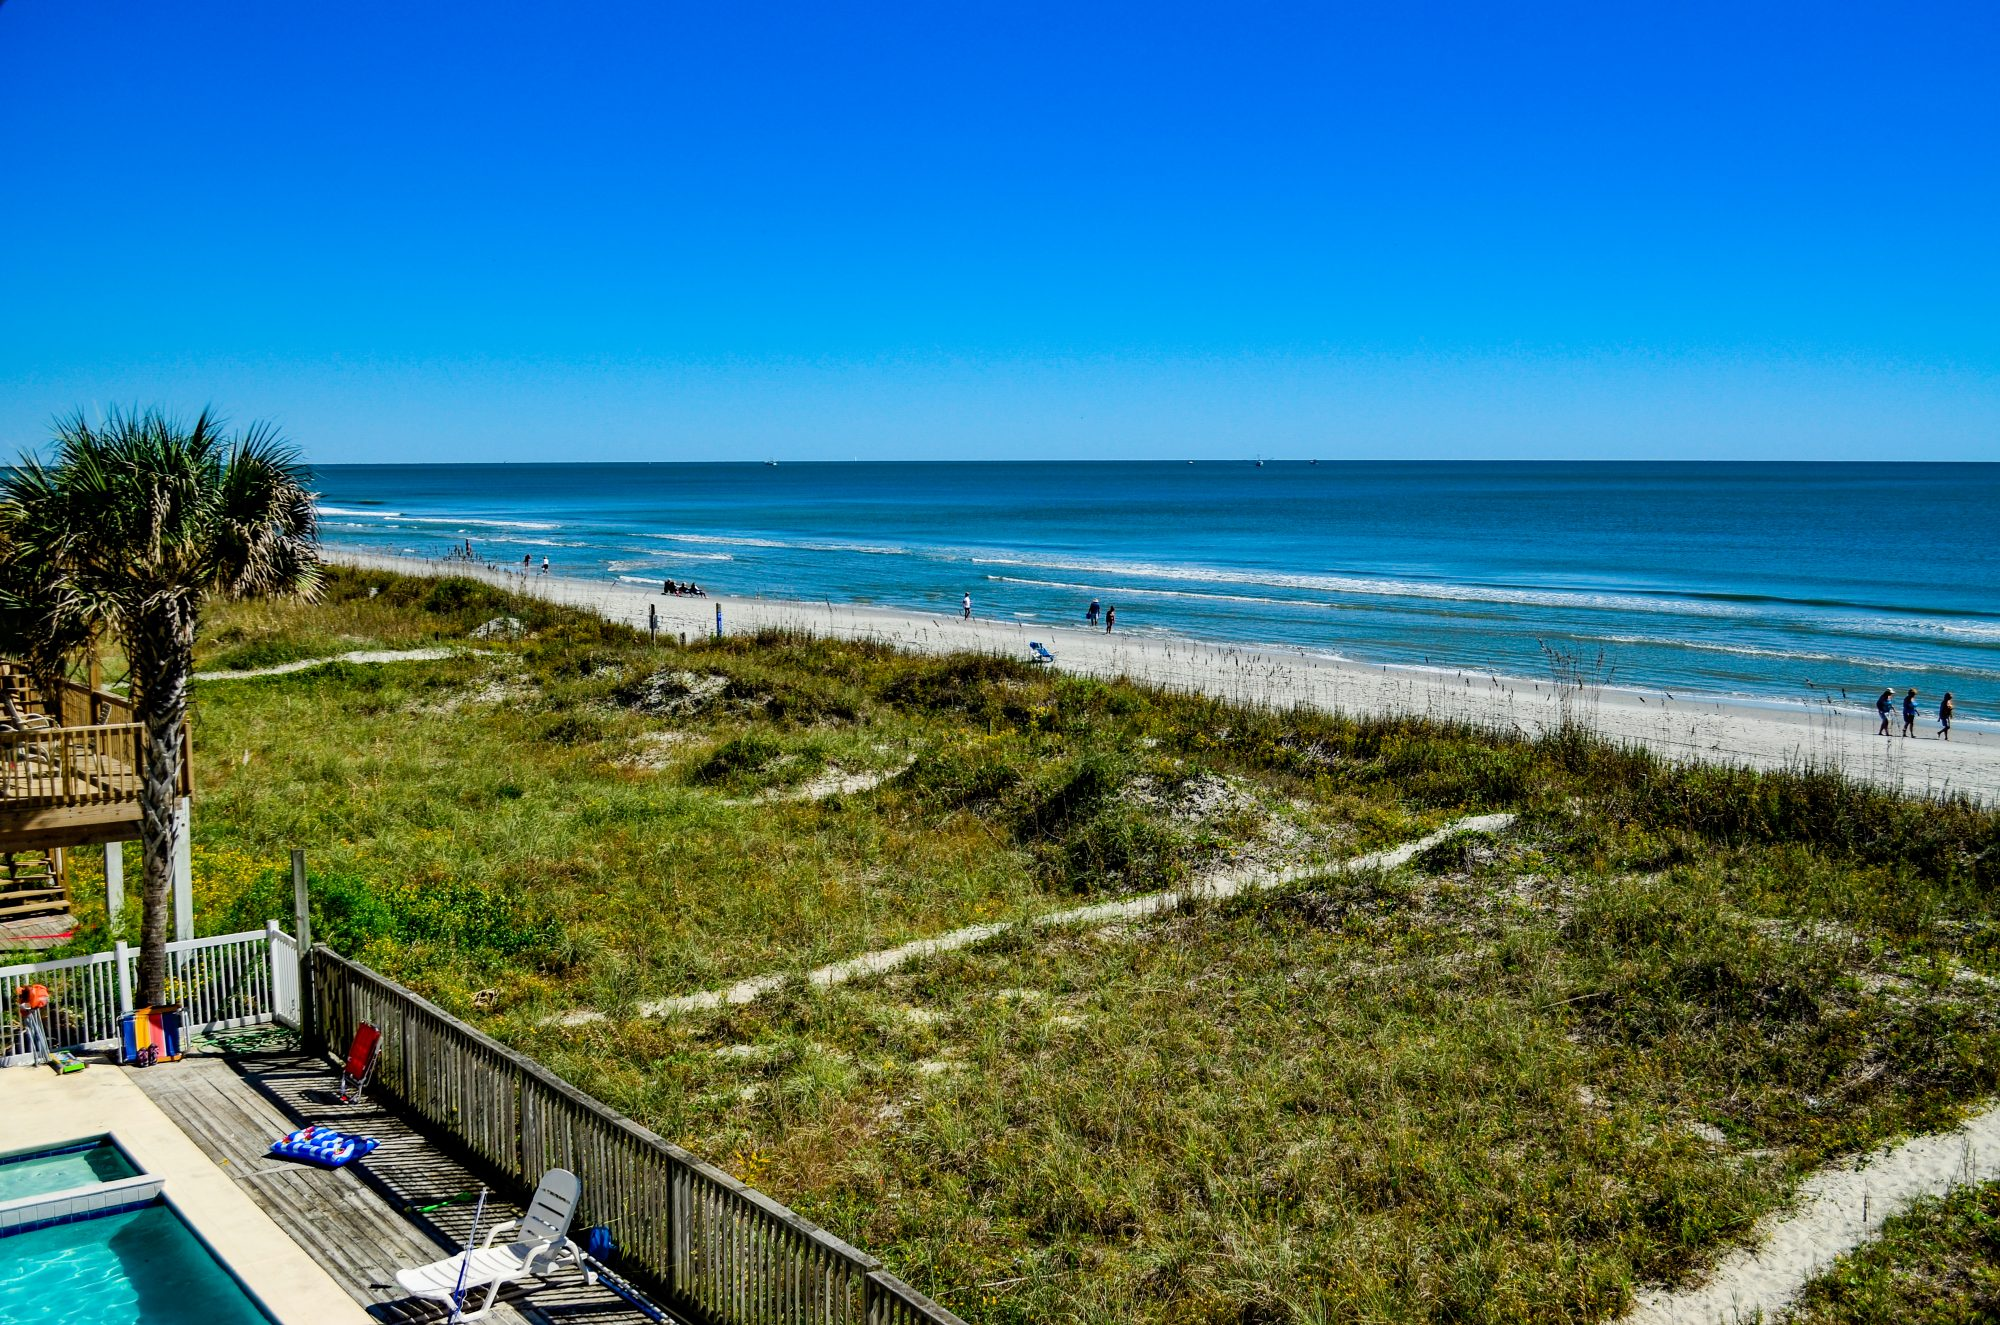 The Myrtle Beach area of South Carolina is a year-round vacationers' paradise along the sun-drenched shores of the Atlantic coastline. Wide, sandy beaches stretching 60 miles from Little River to Georgetown lure visitors back again and again.